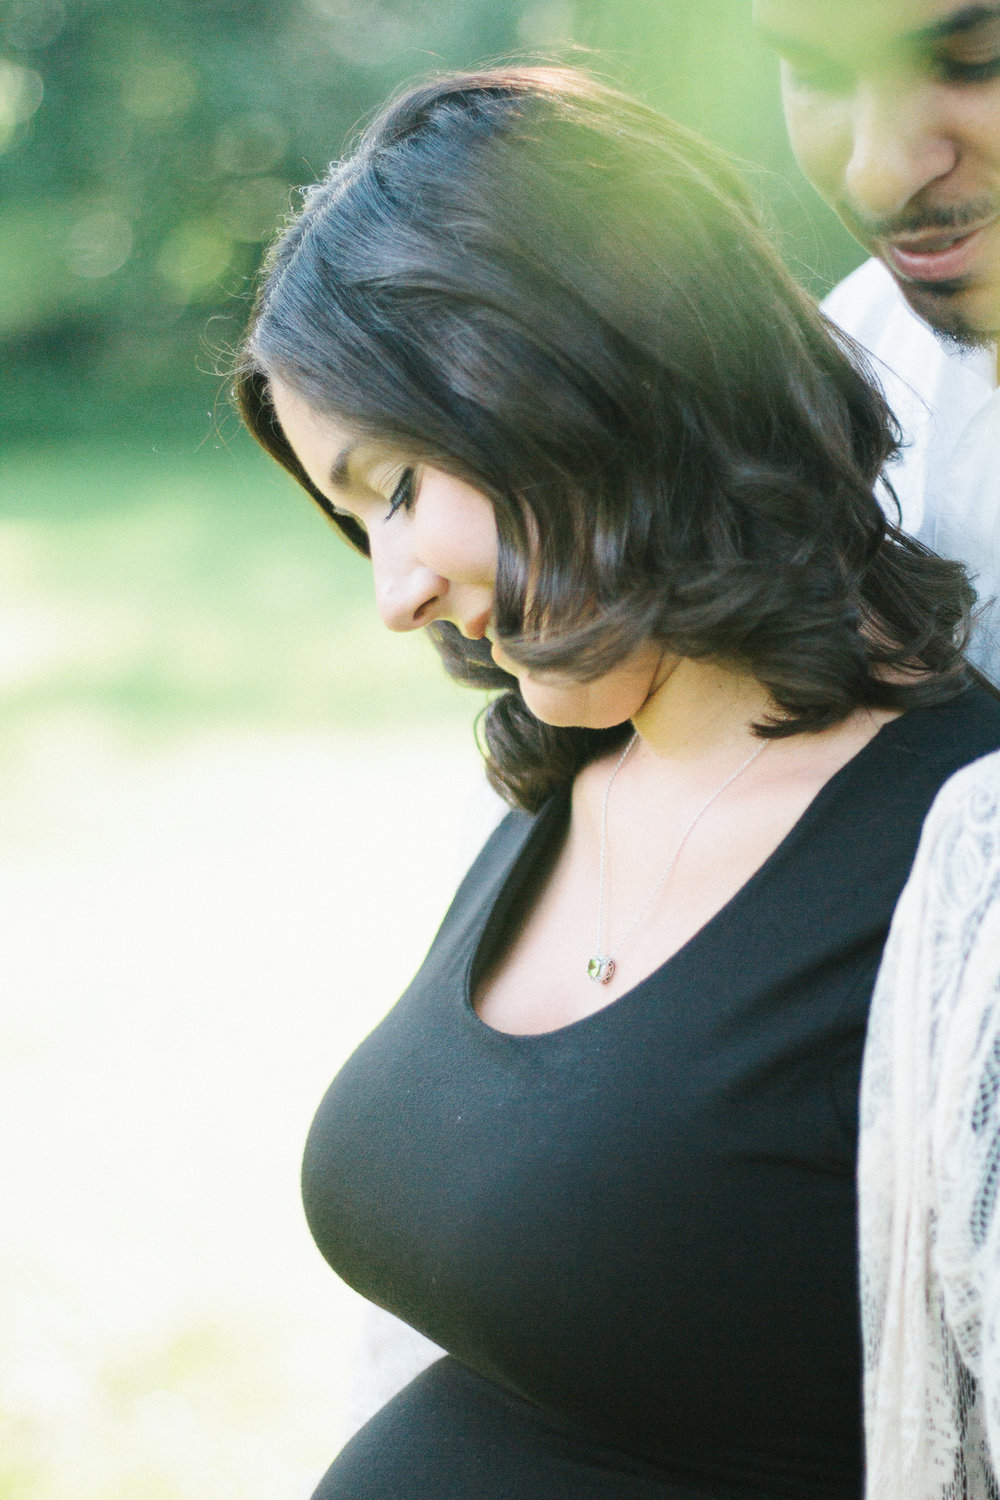 Dad looking at mom during a maternity session in Southern New Jersey photographed by Danielle Gallo Photography